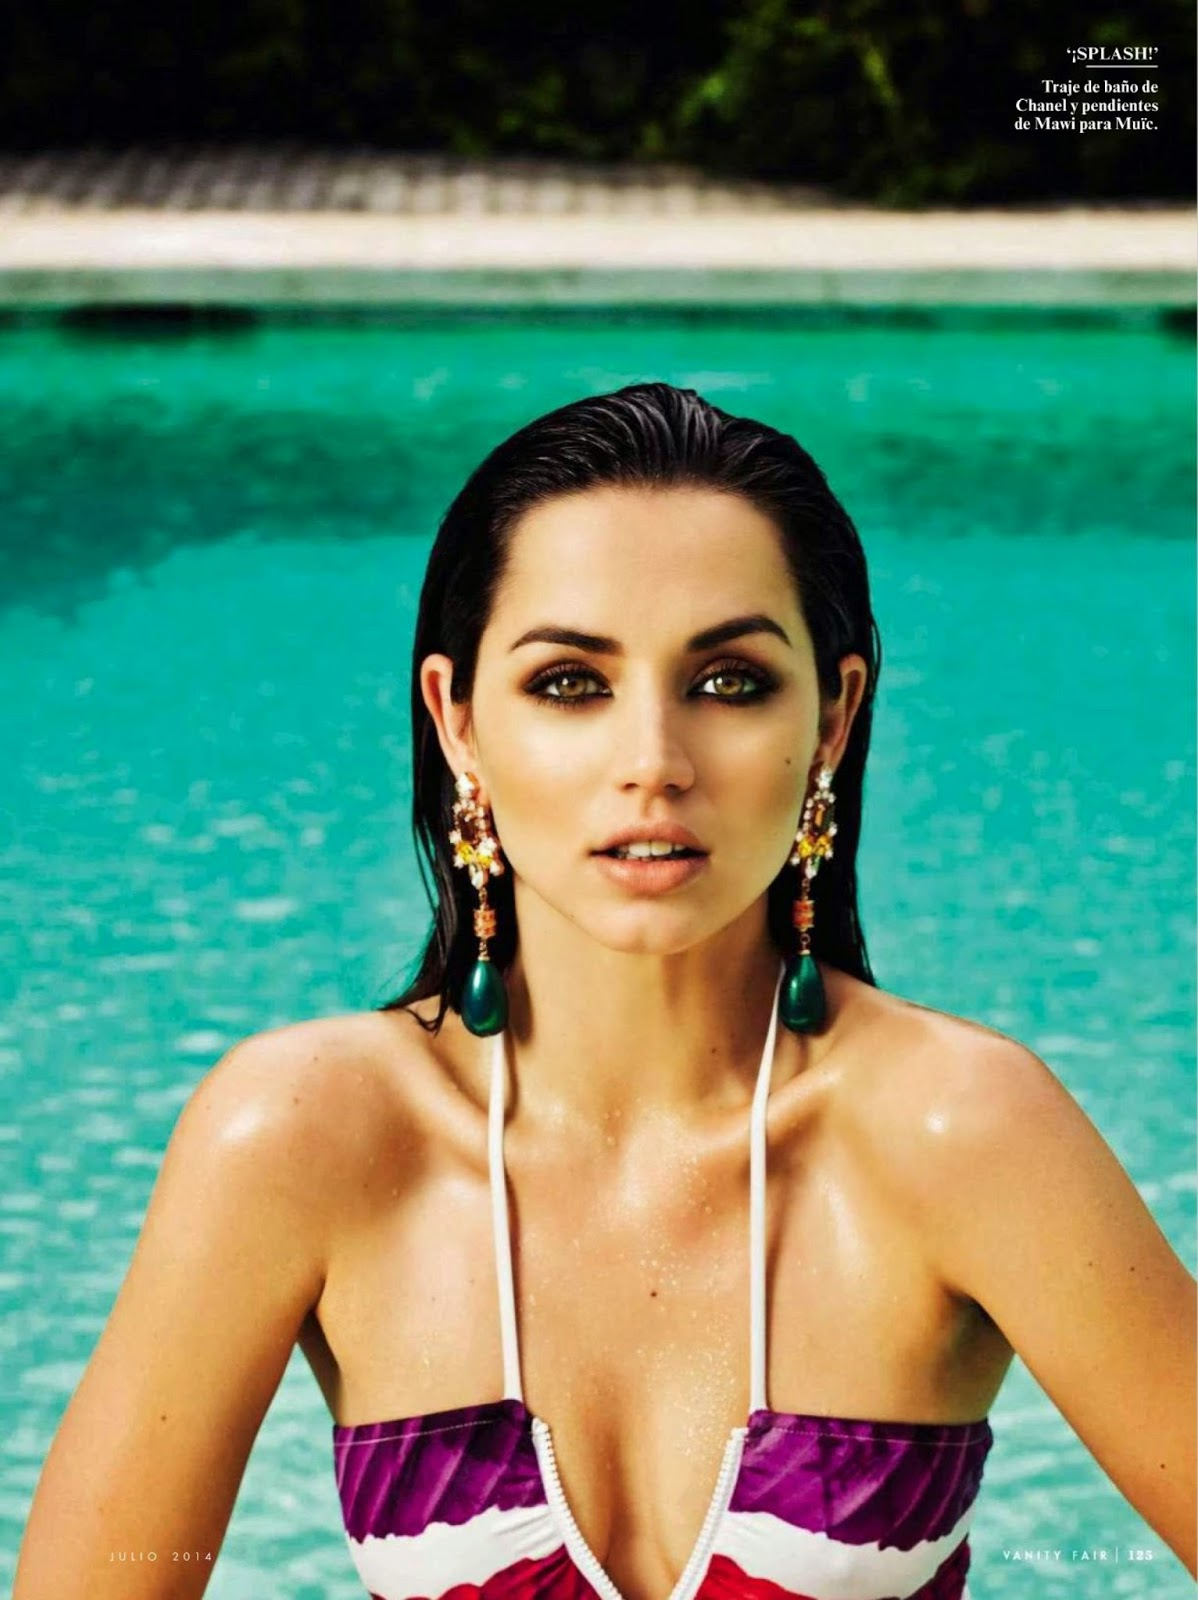 Ana De Armas For Vanity Fair Magazine, Spain, July 2014